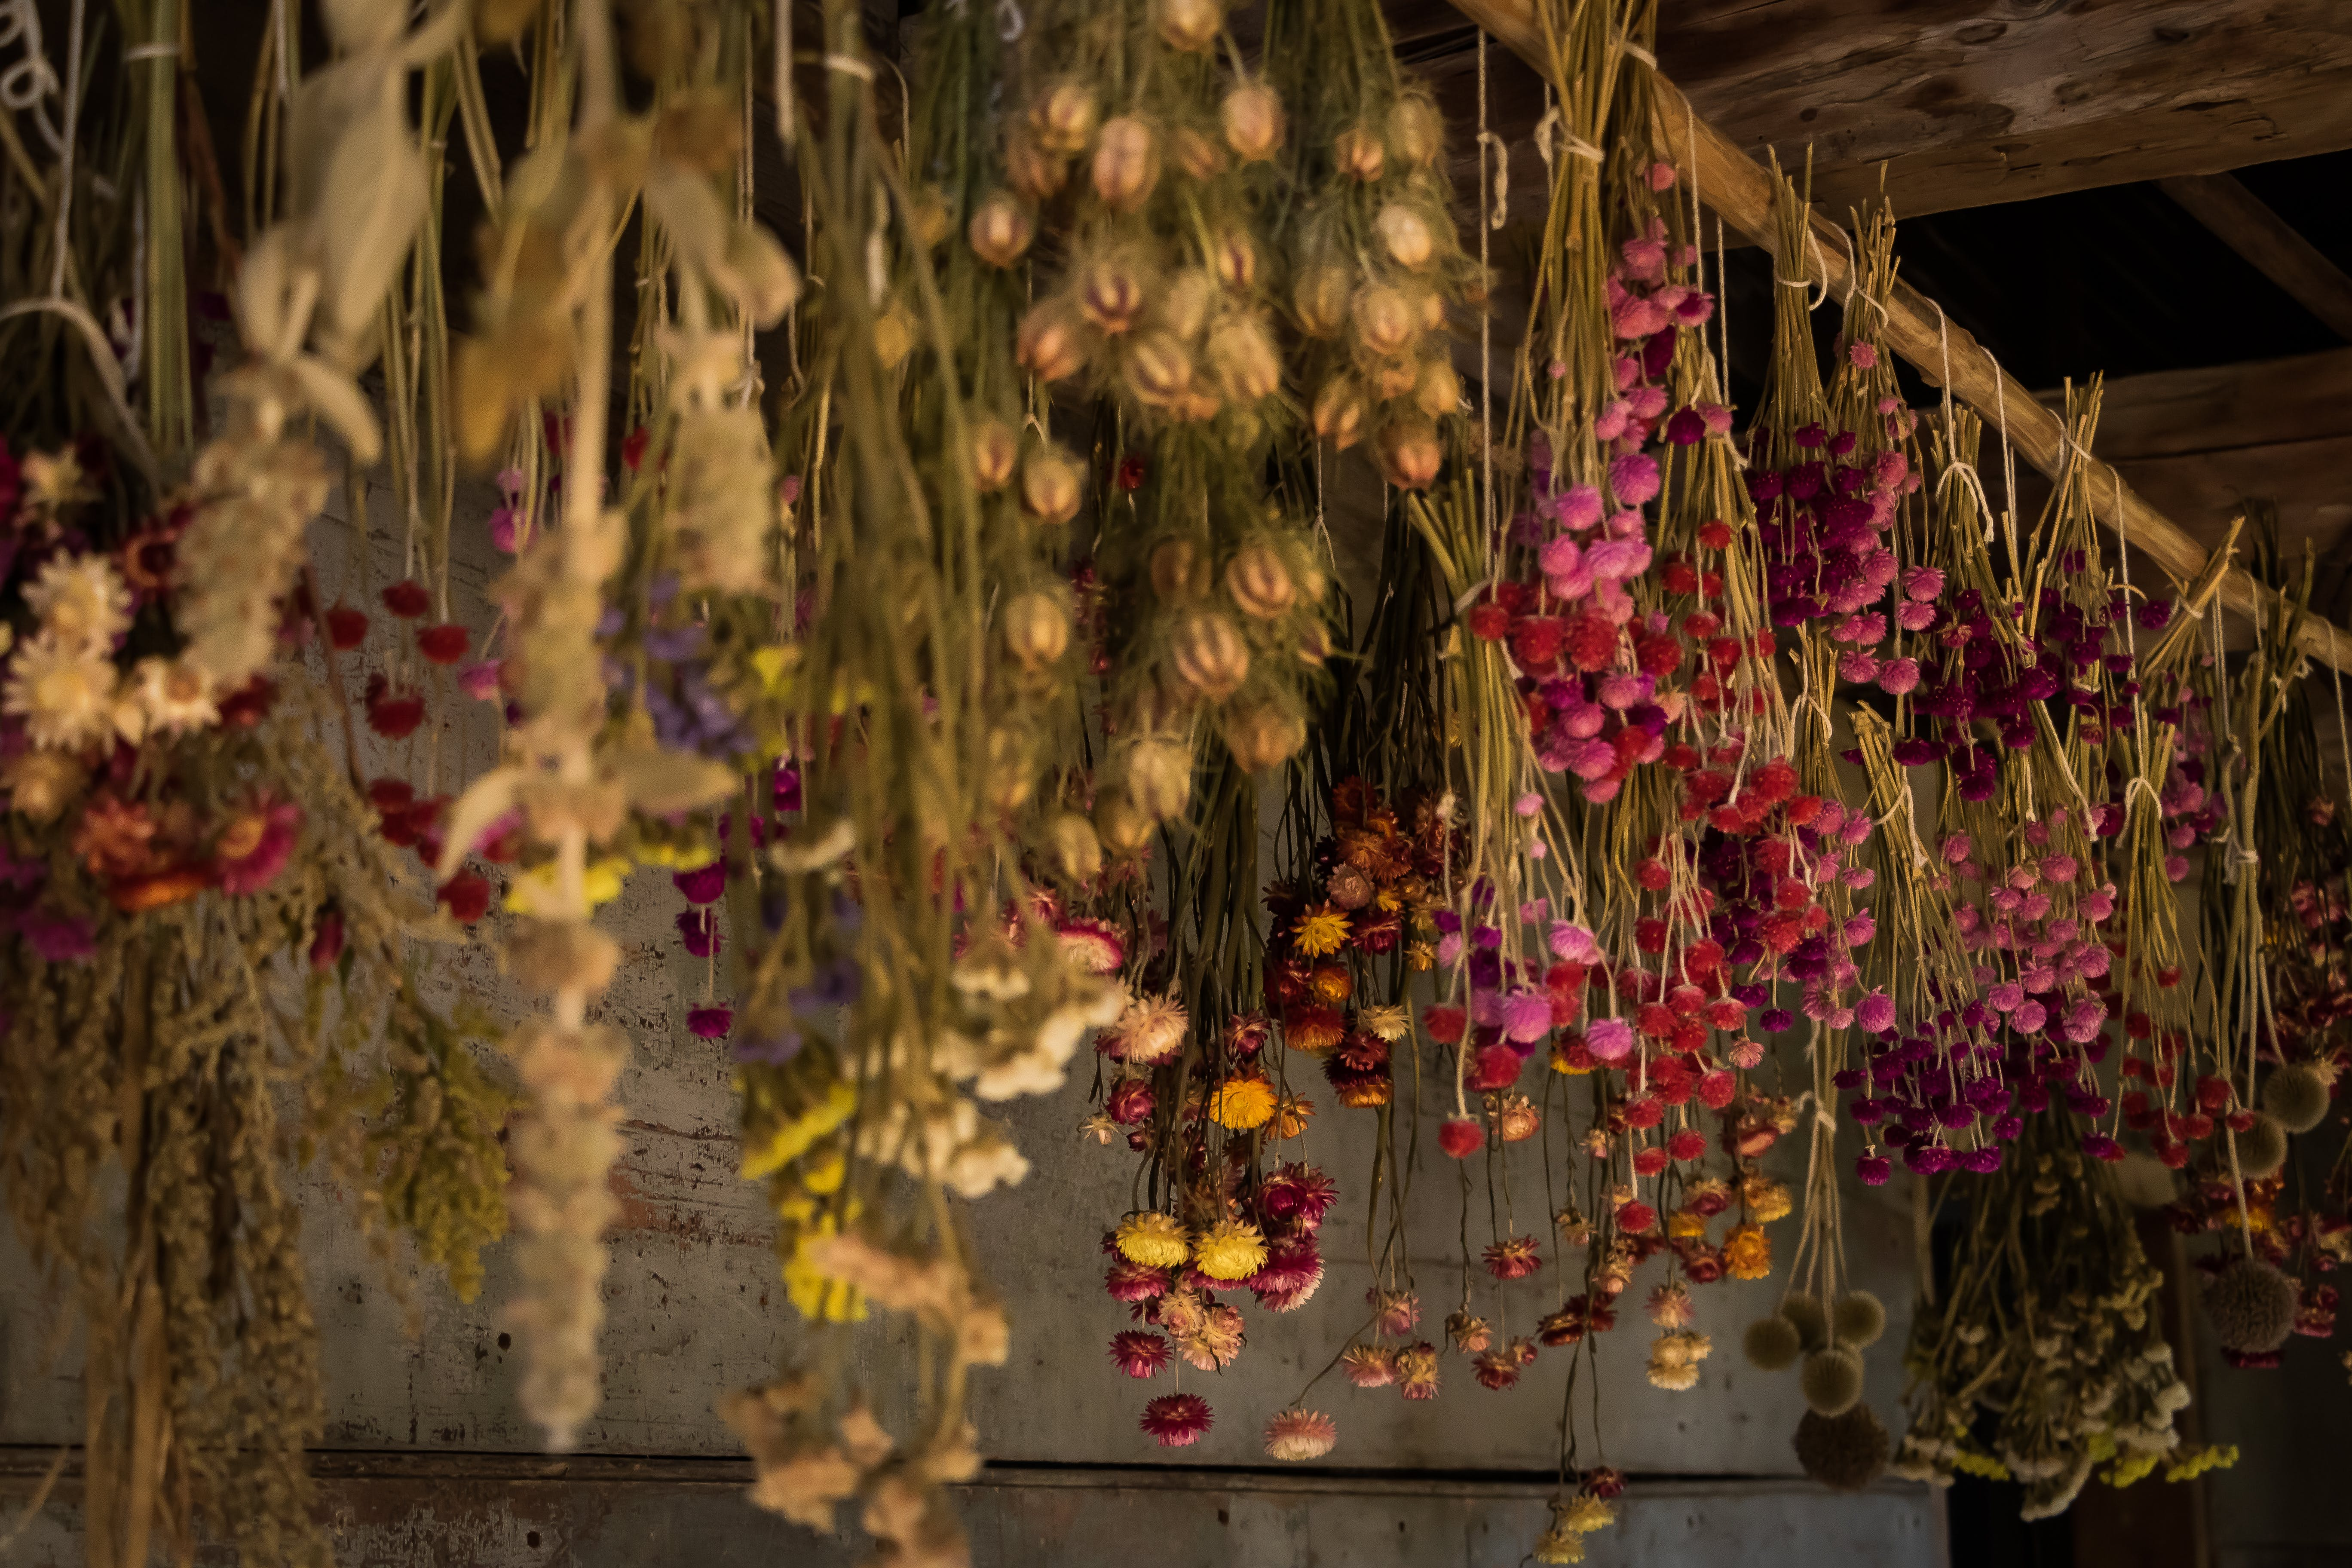 Free stock photo of dried flowers